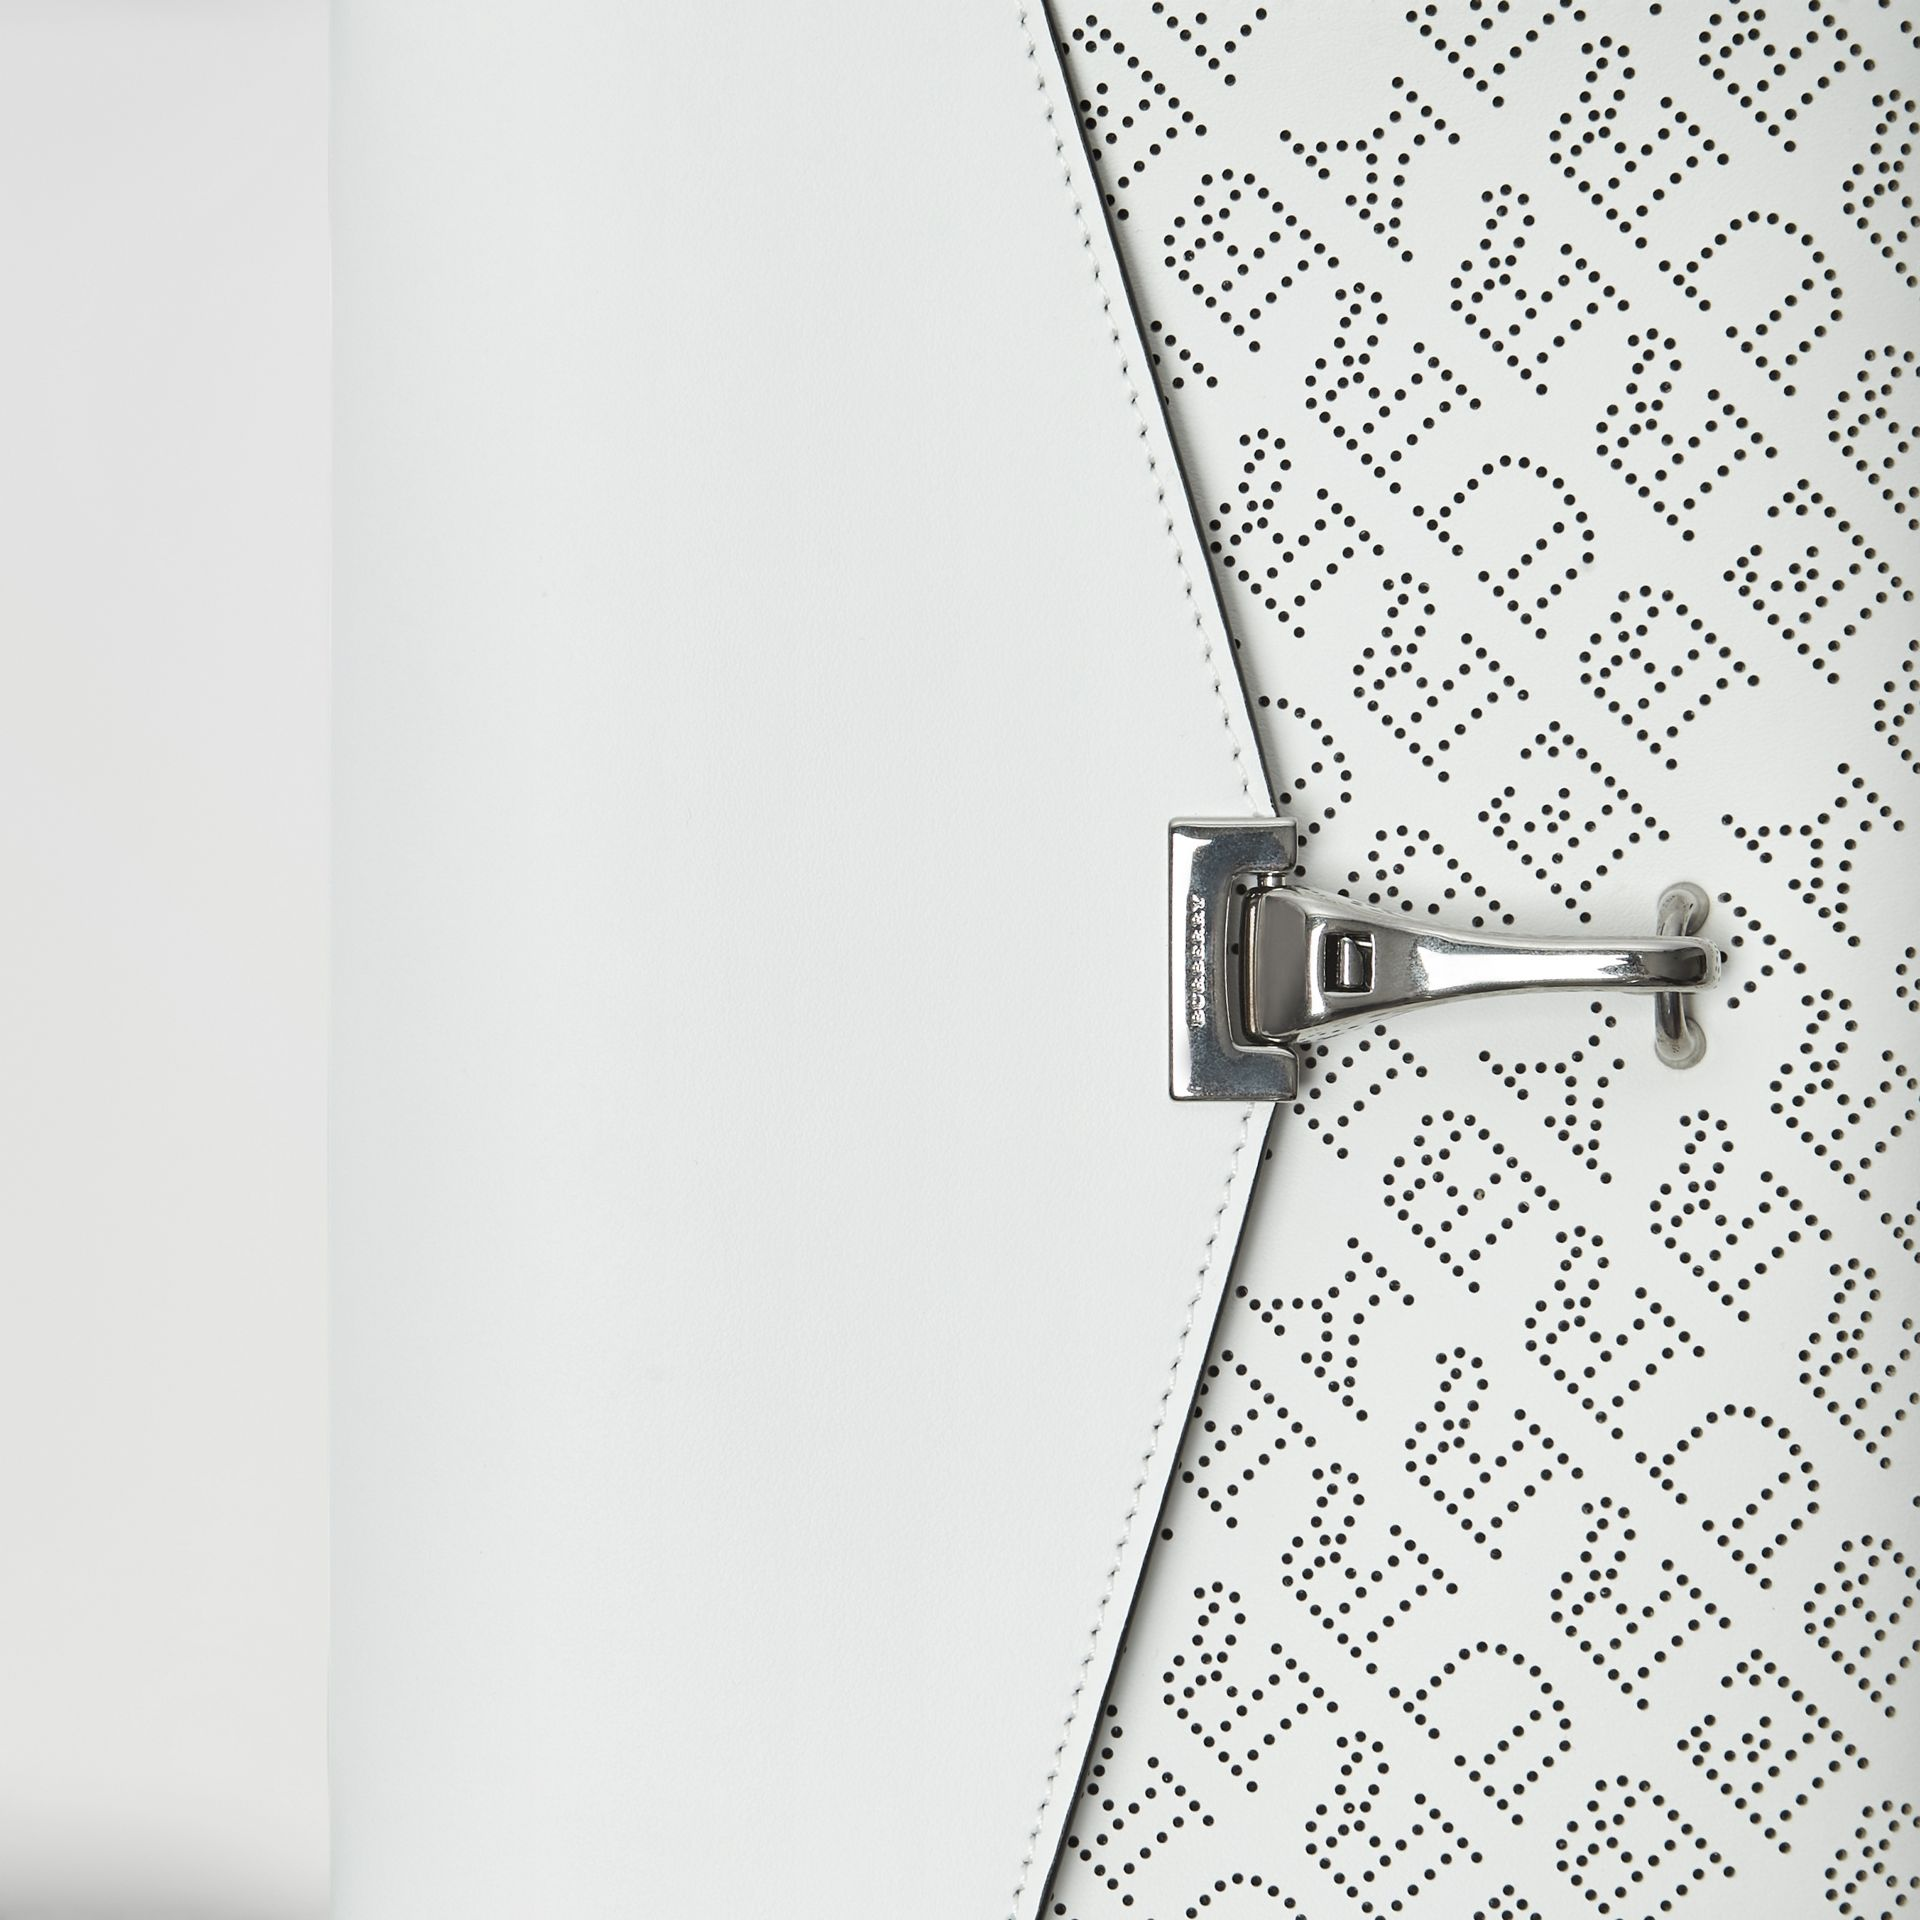 Small Perforated Logo Leather Crossbody Bag in Chalk White - Women | Burberry United Kingdom - gallery image 1